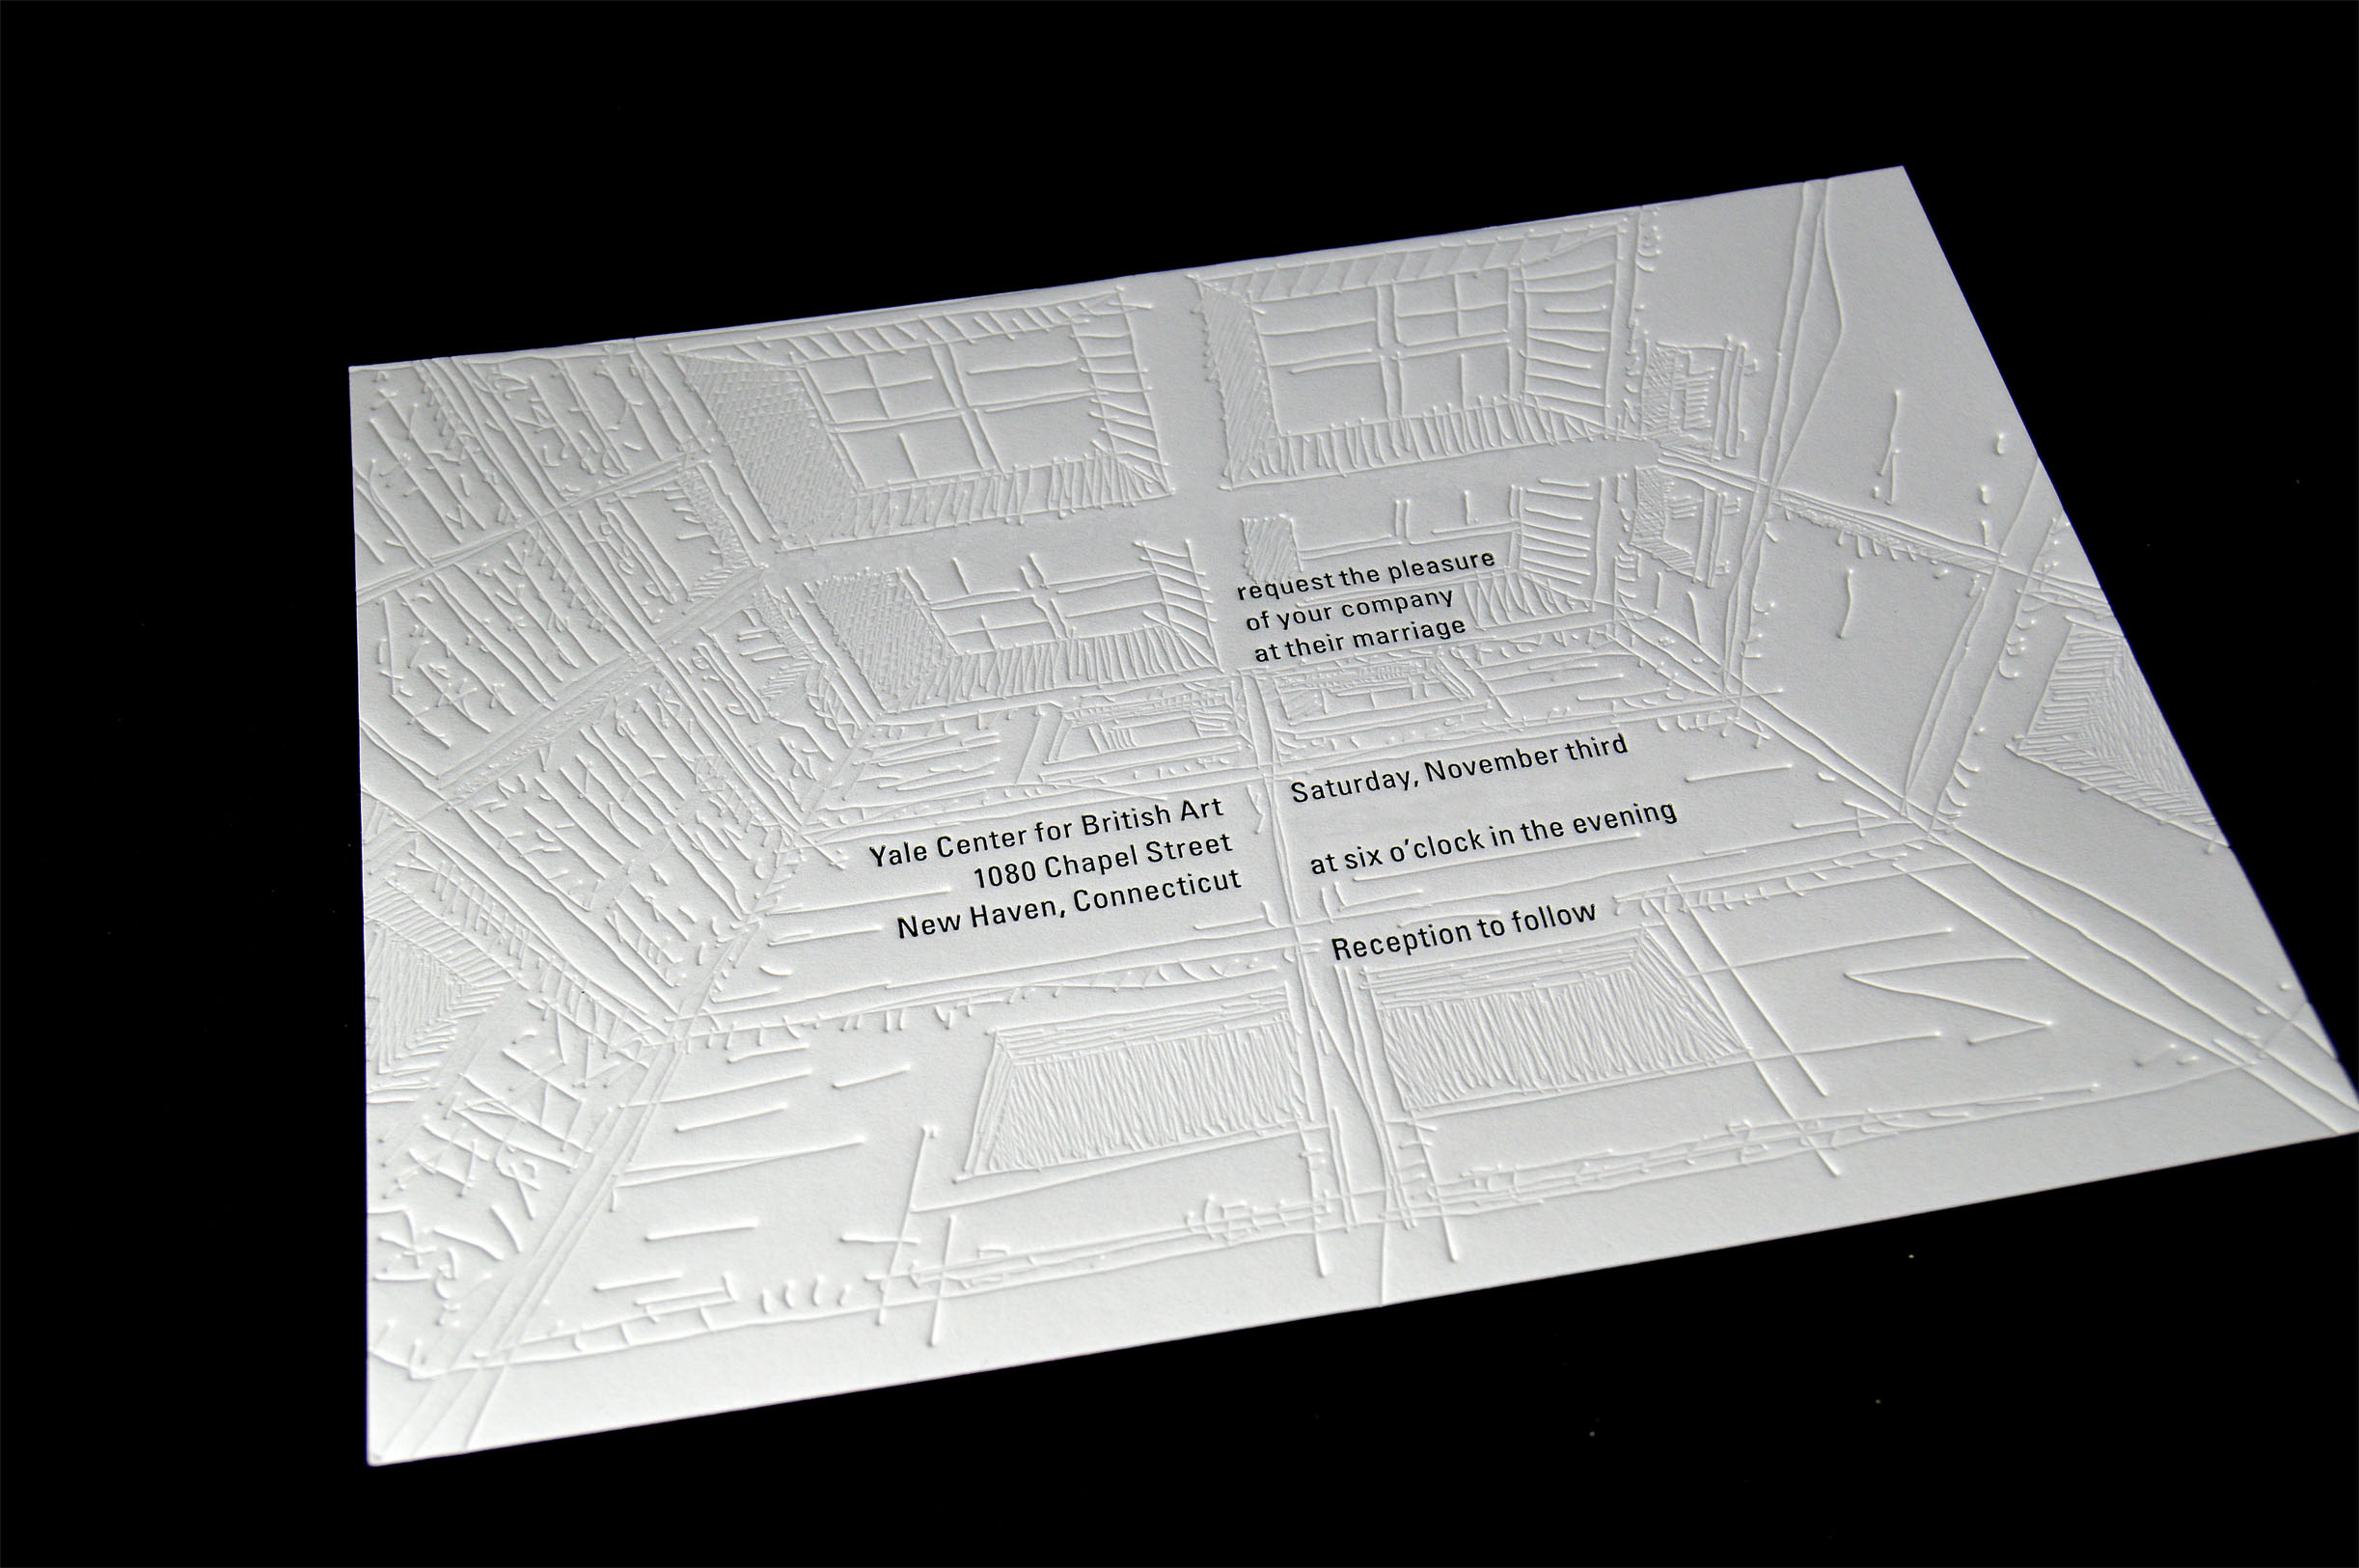 Letterpress Printer | Business Cards & Invitations - Cannelli Printing